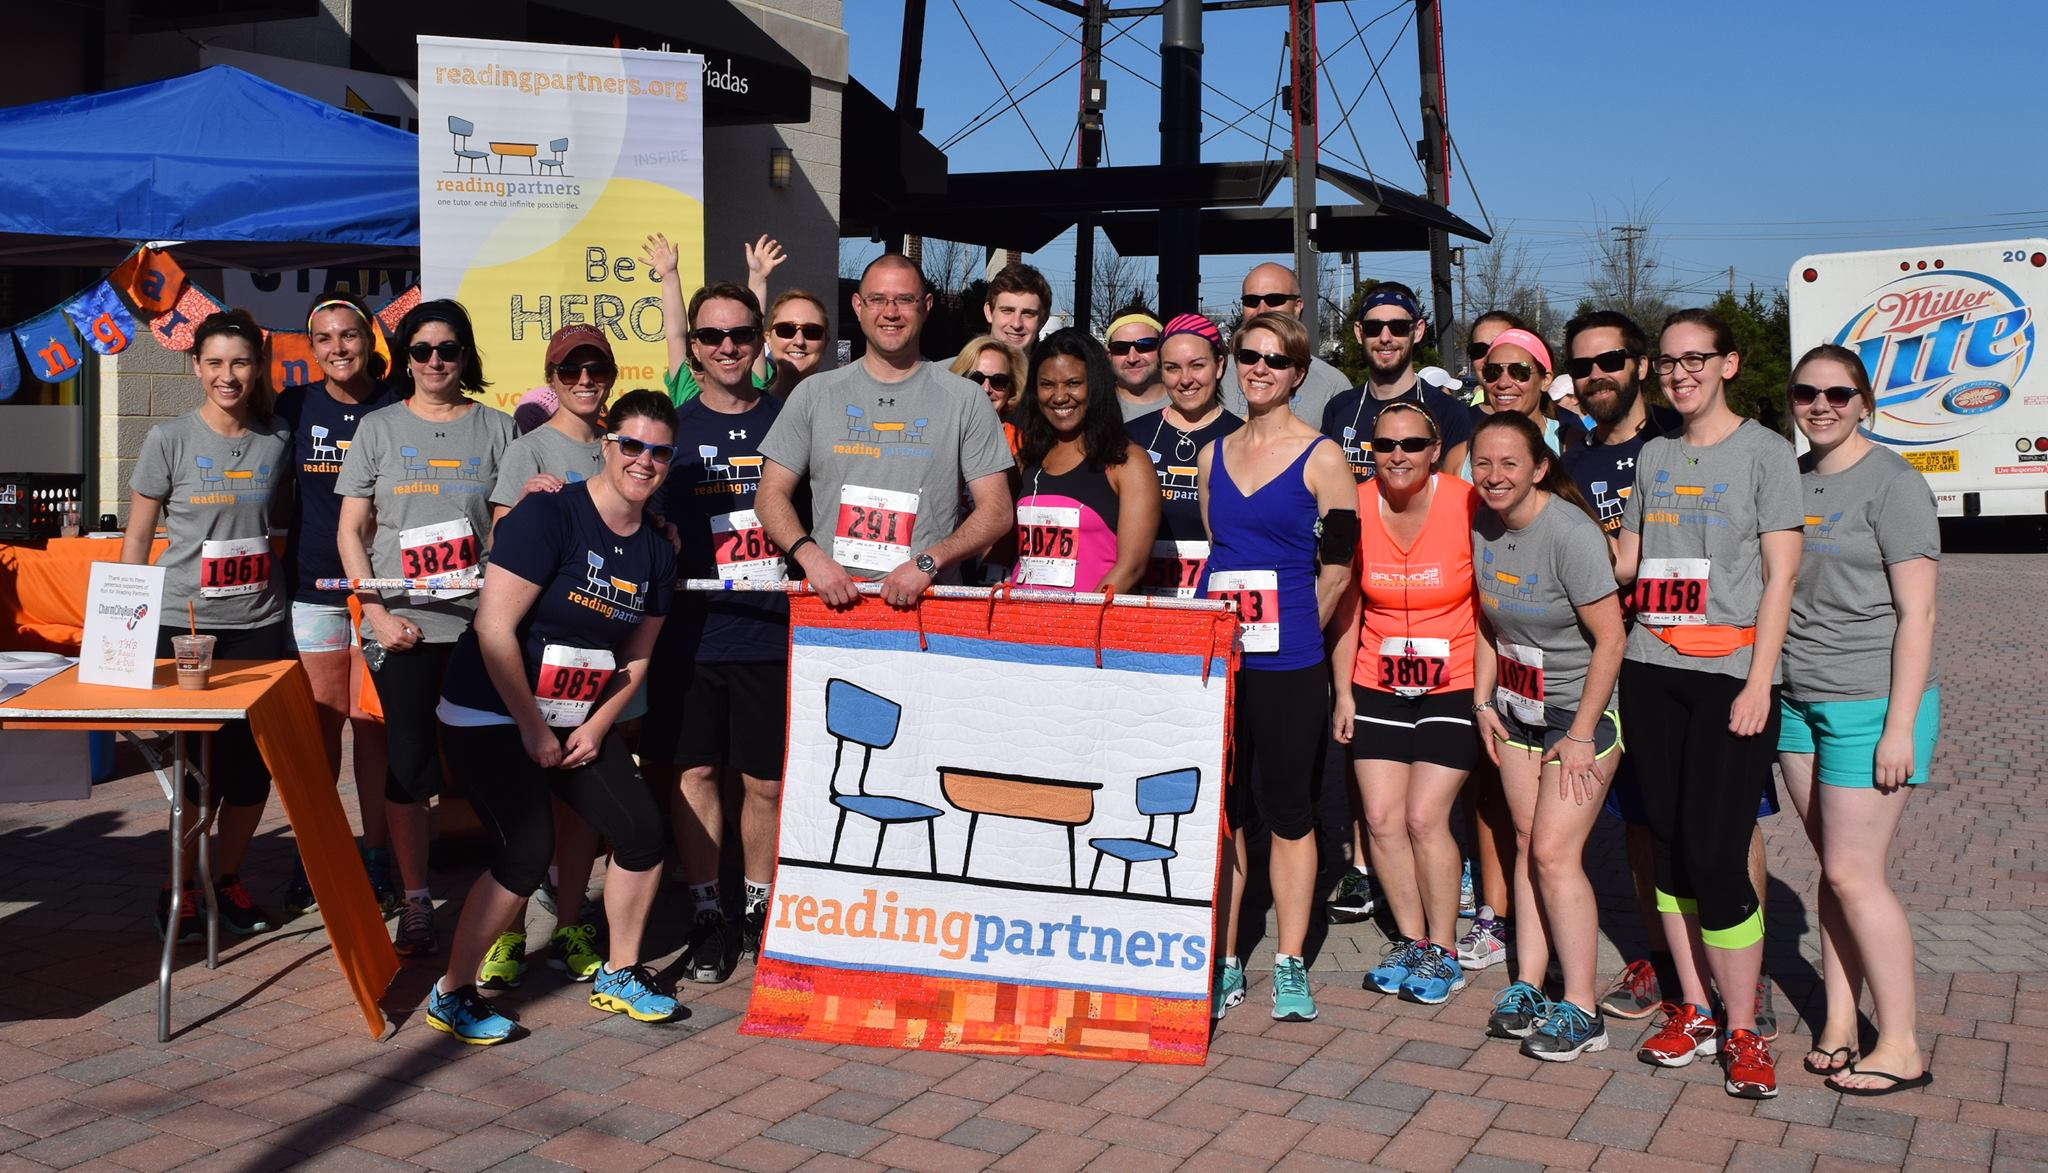 Run for Reading Partners in Baltimore